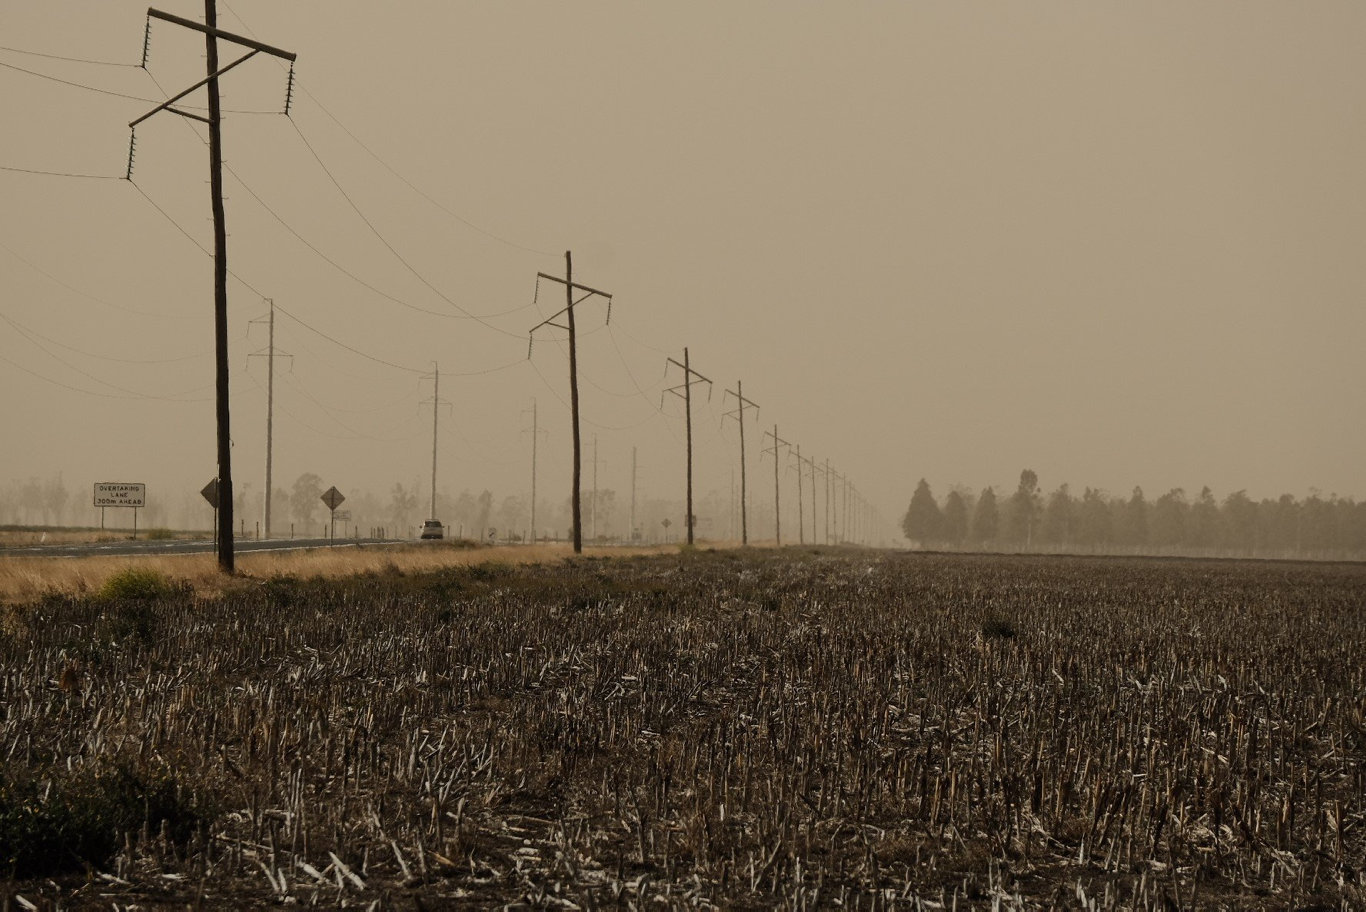 A cloud of dust is covering south west Queensland this morning as windy conditions continue.